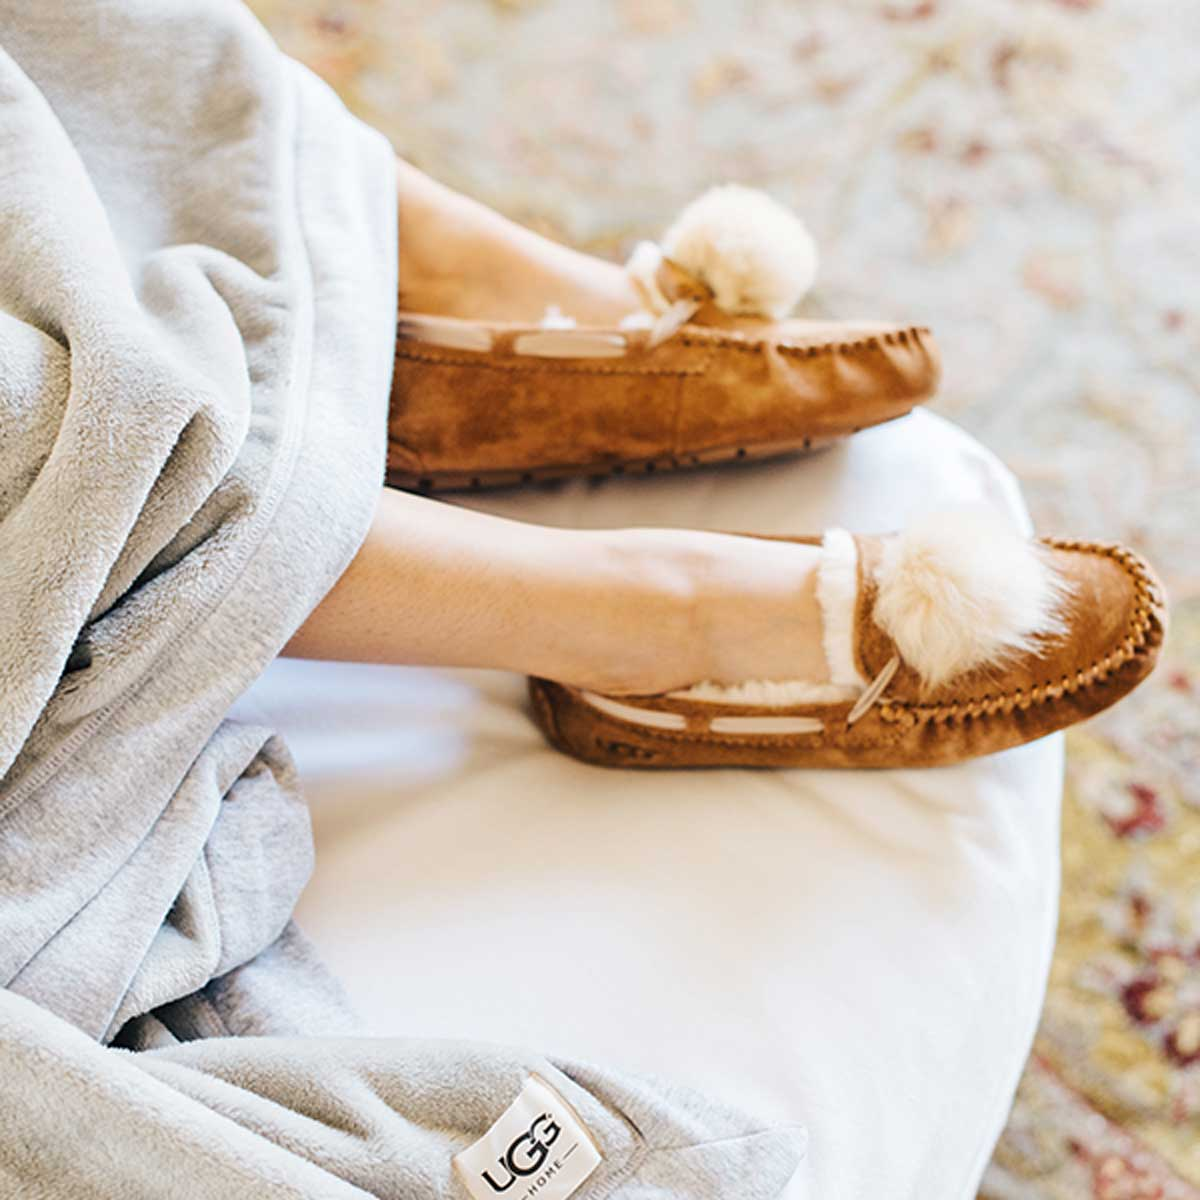 34d726205b1 UGG Australia: The softest pom pom slippers | Milled